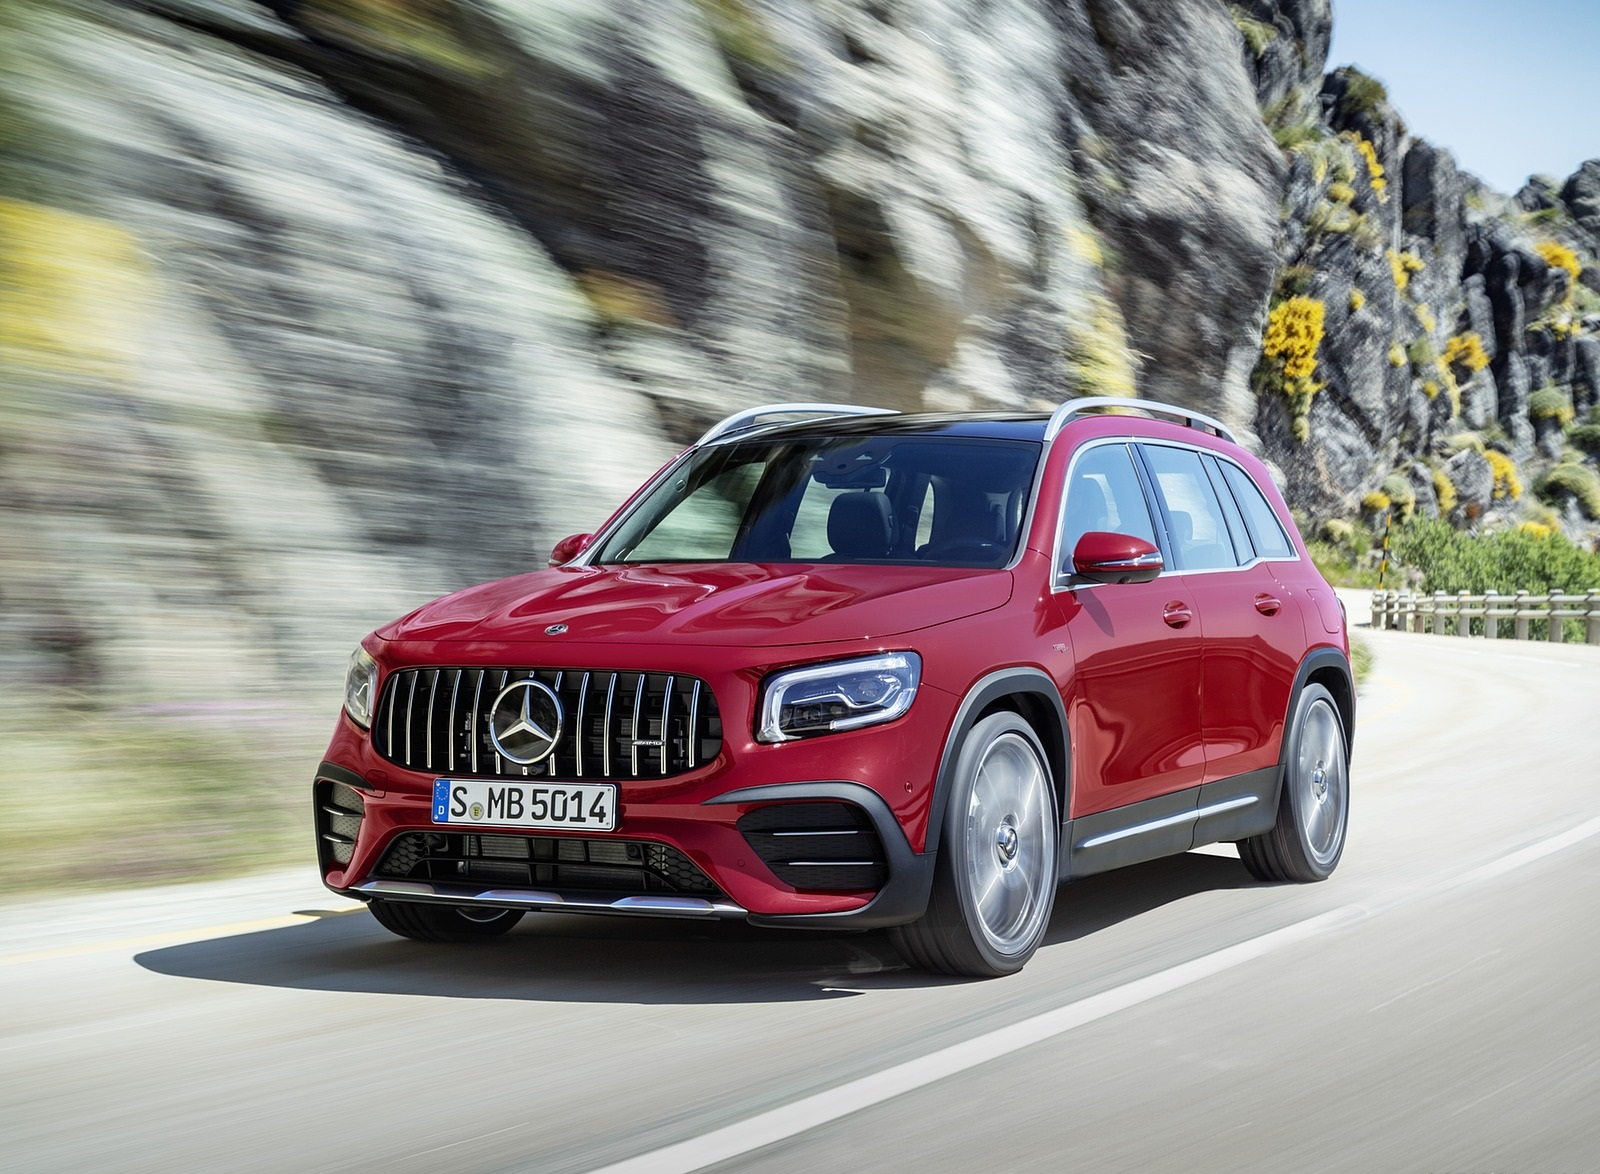 2021 Mercedes-AMG GLB 35 4MATIC (Color: Designo Patagonia Red Metallic) Front Three-Quarter Wallpapers (3)